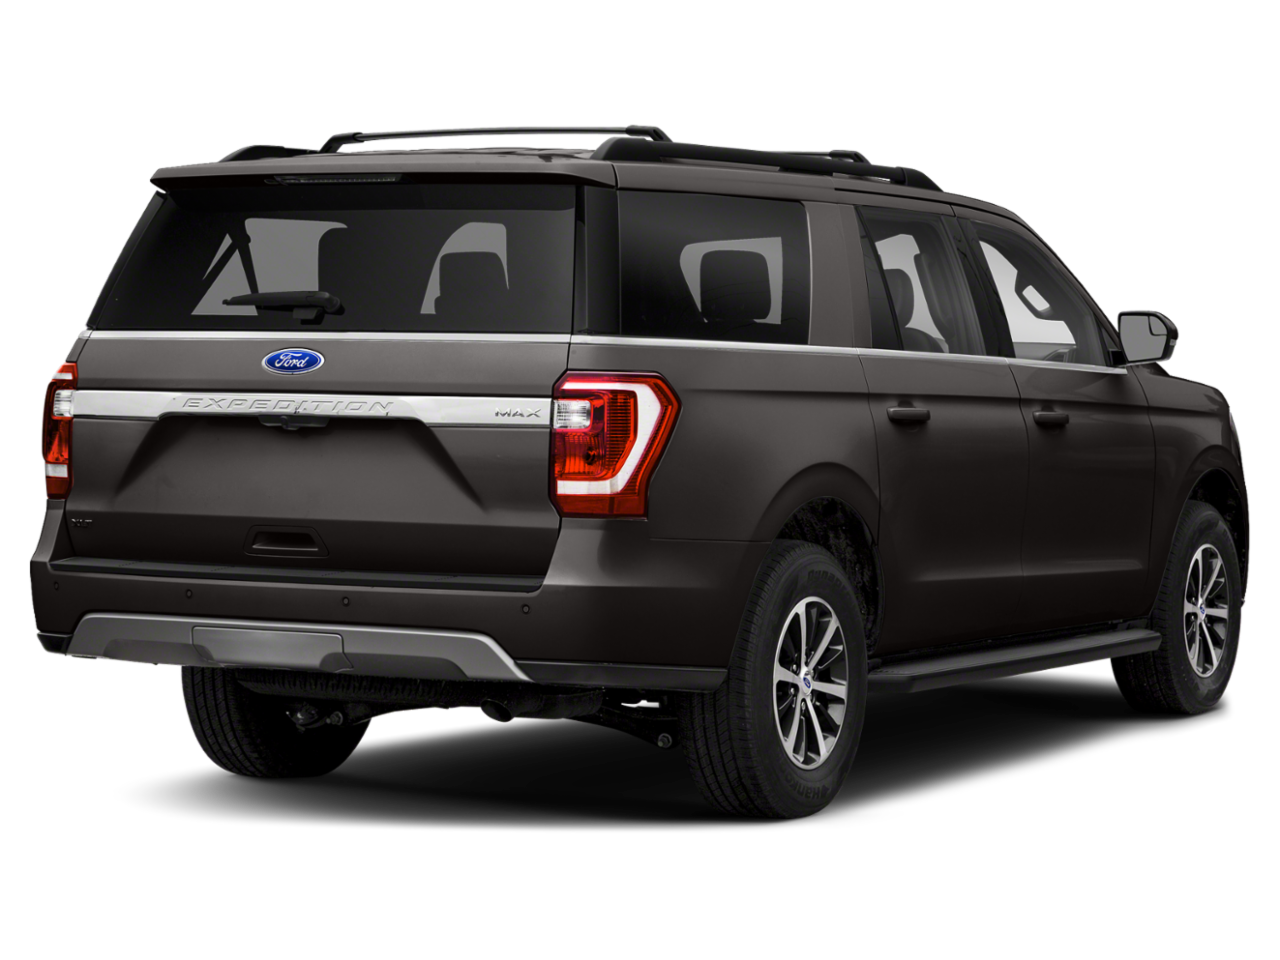 image-1 2021 Ford EXPEDITION